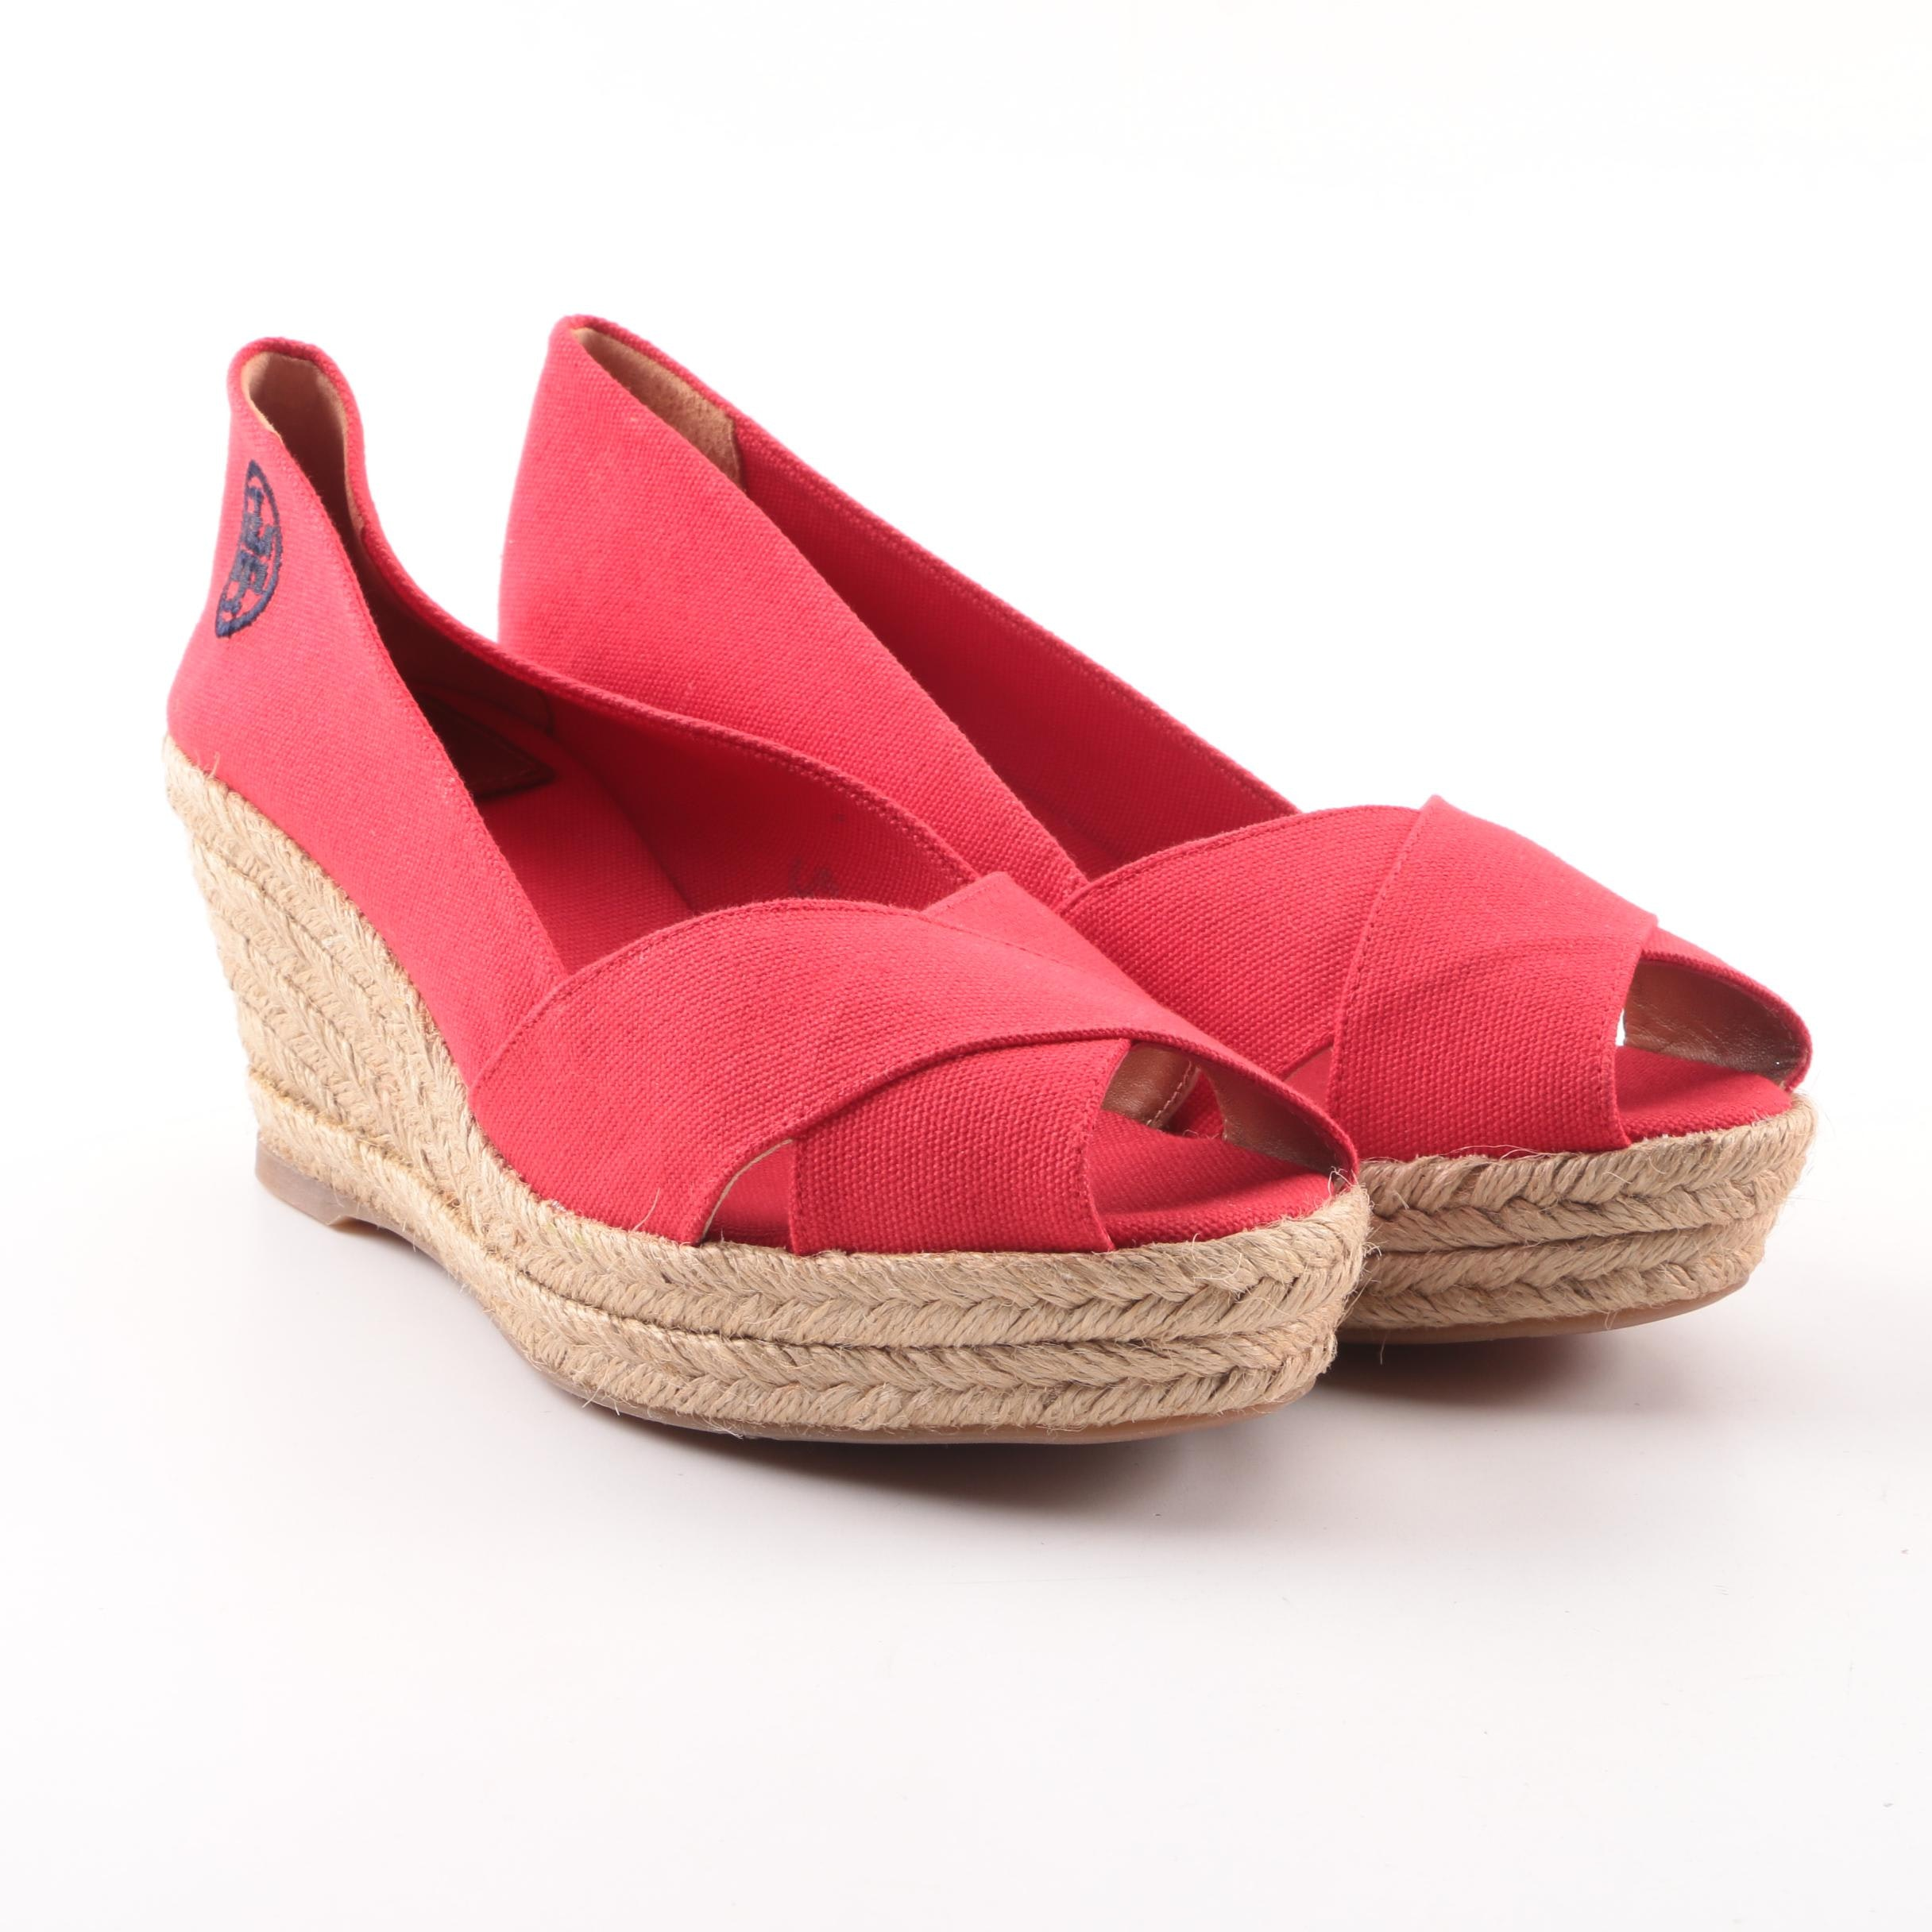 Tory Burch Judith Red Canvas Espadrille Wedges